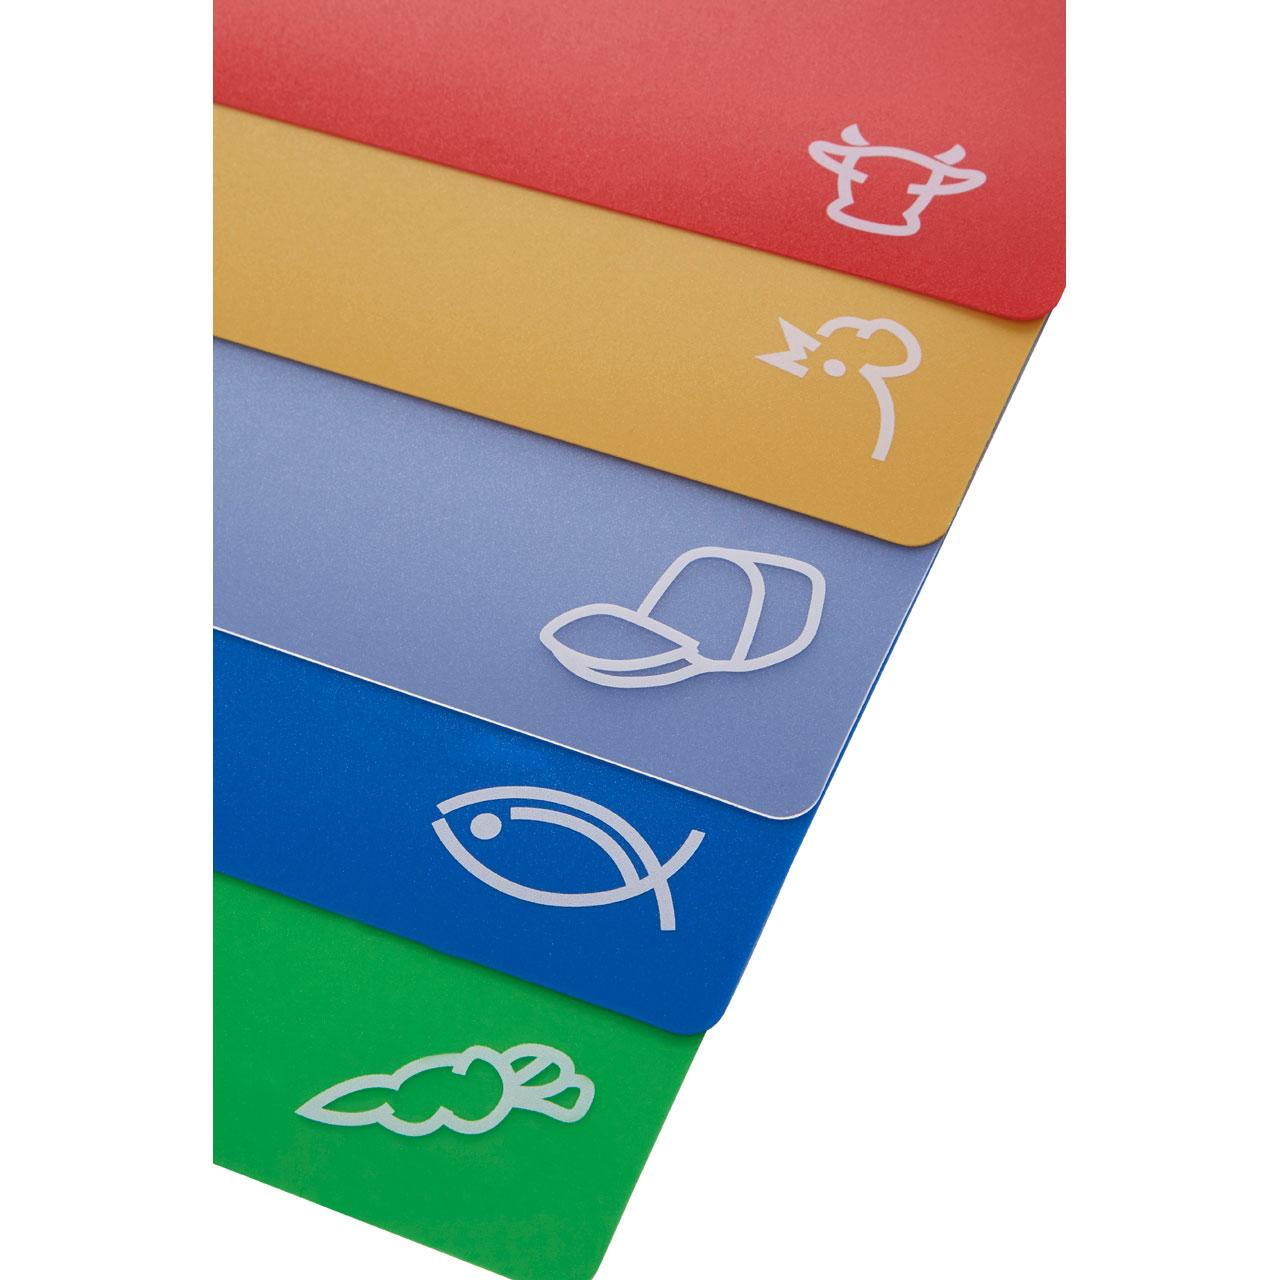 The item for sale is premier set of 5 coloured flexible chopping - Colourful Chopping Mats